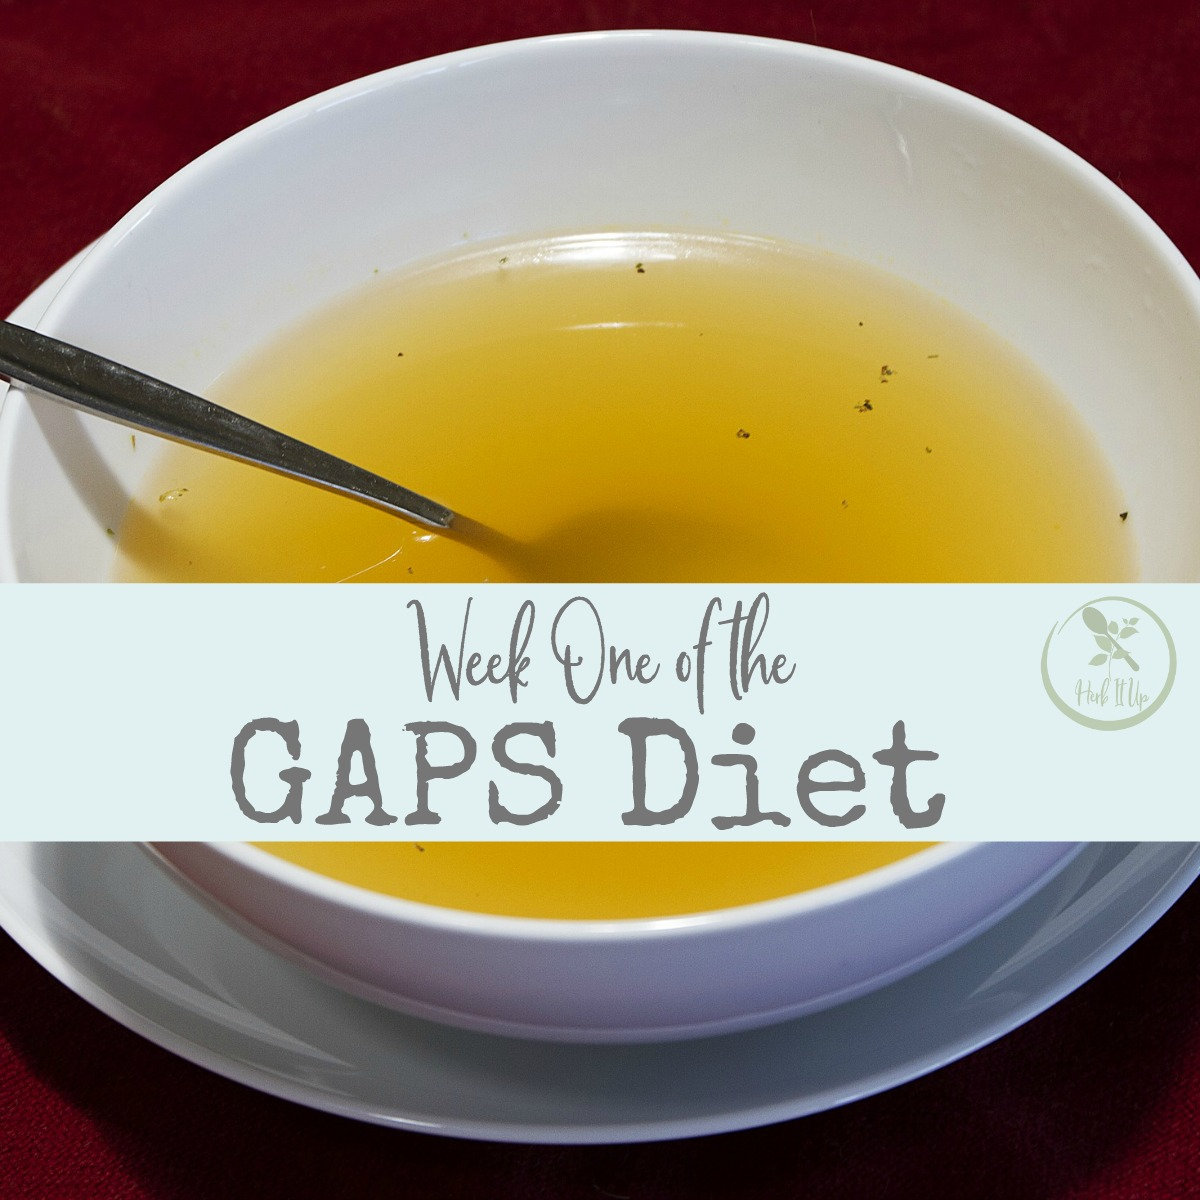 Here is what our Week one of the GAPS Diet looks like.